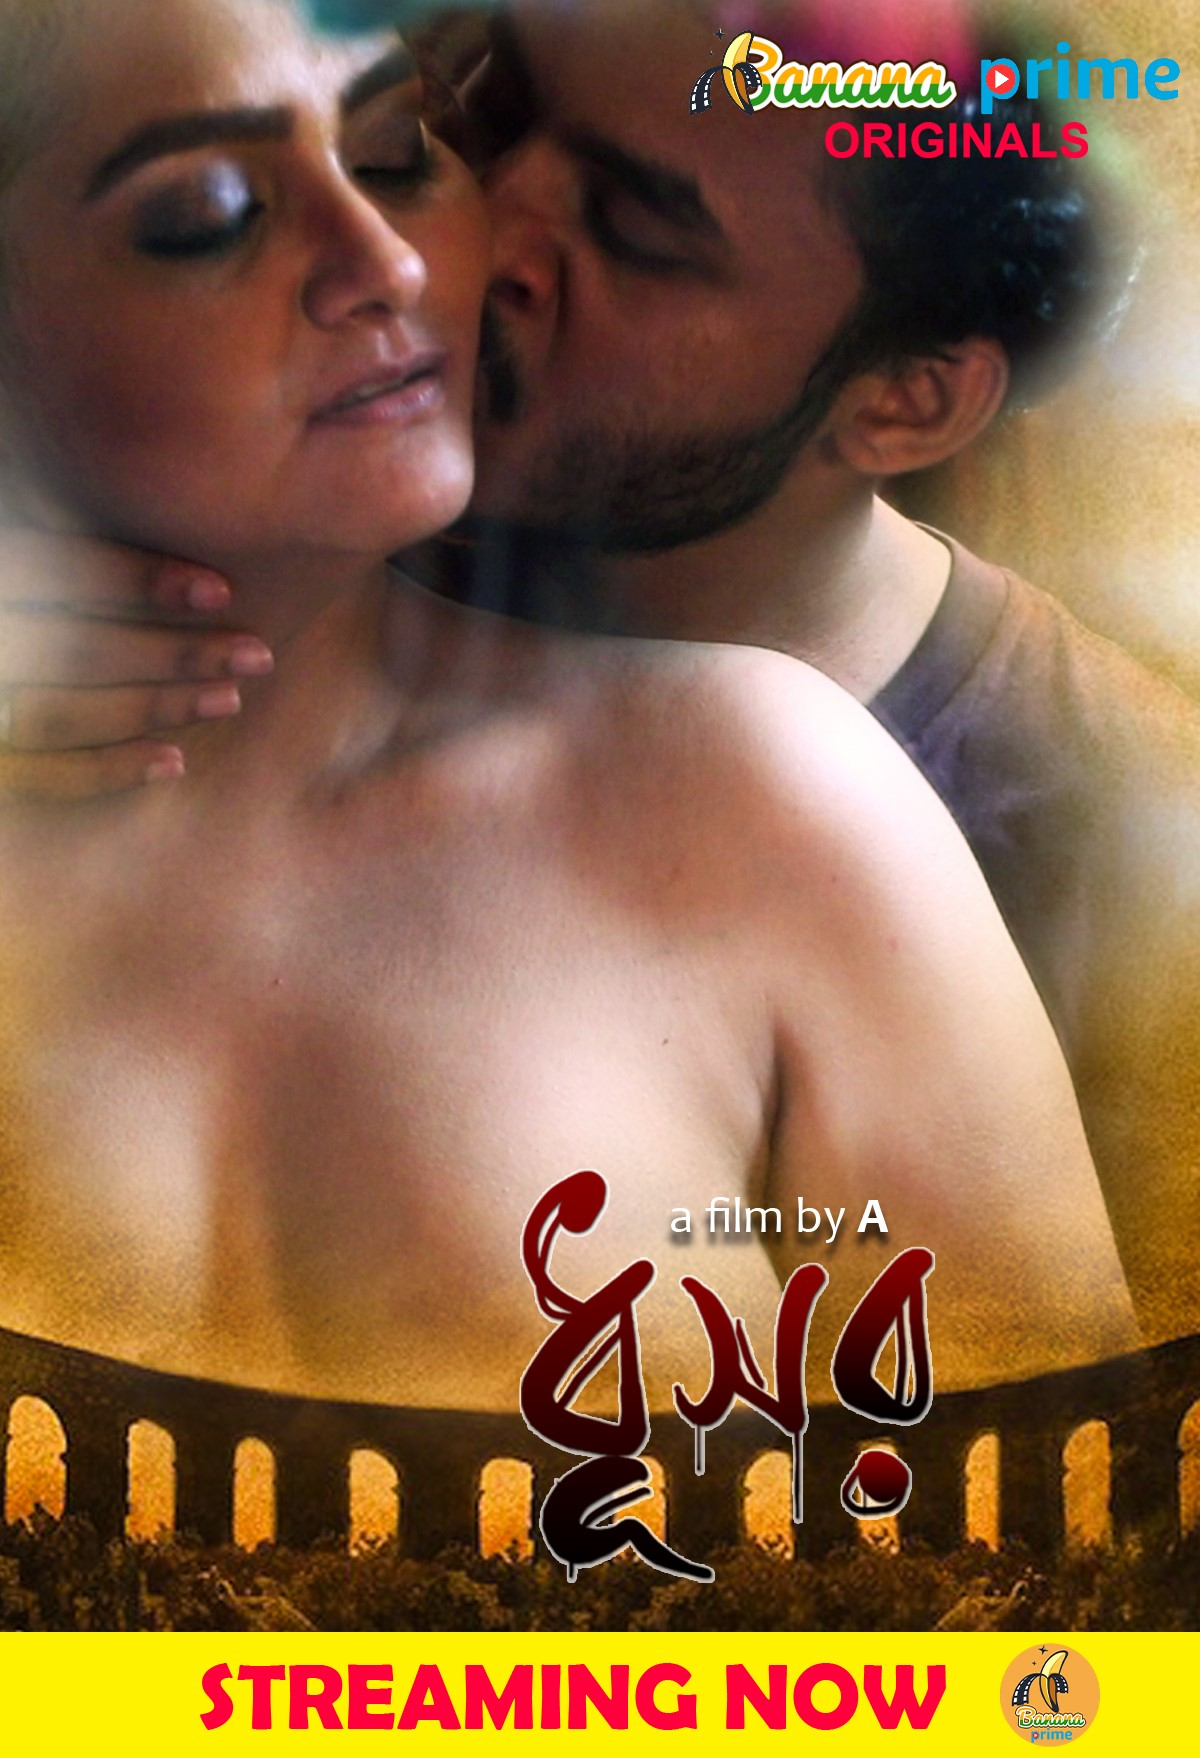 18+ Dhusor (2021) BananaPrime Originals Bengali Short Film 720p UNRATED HDRip 200MB Download